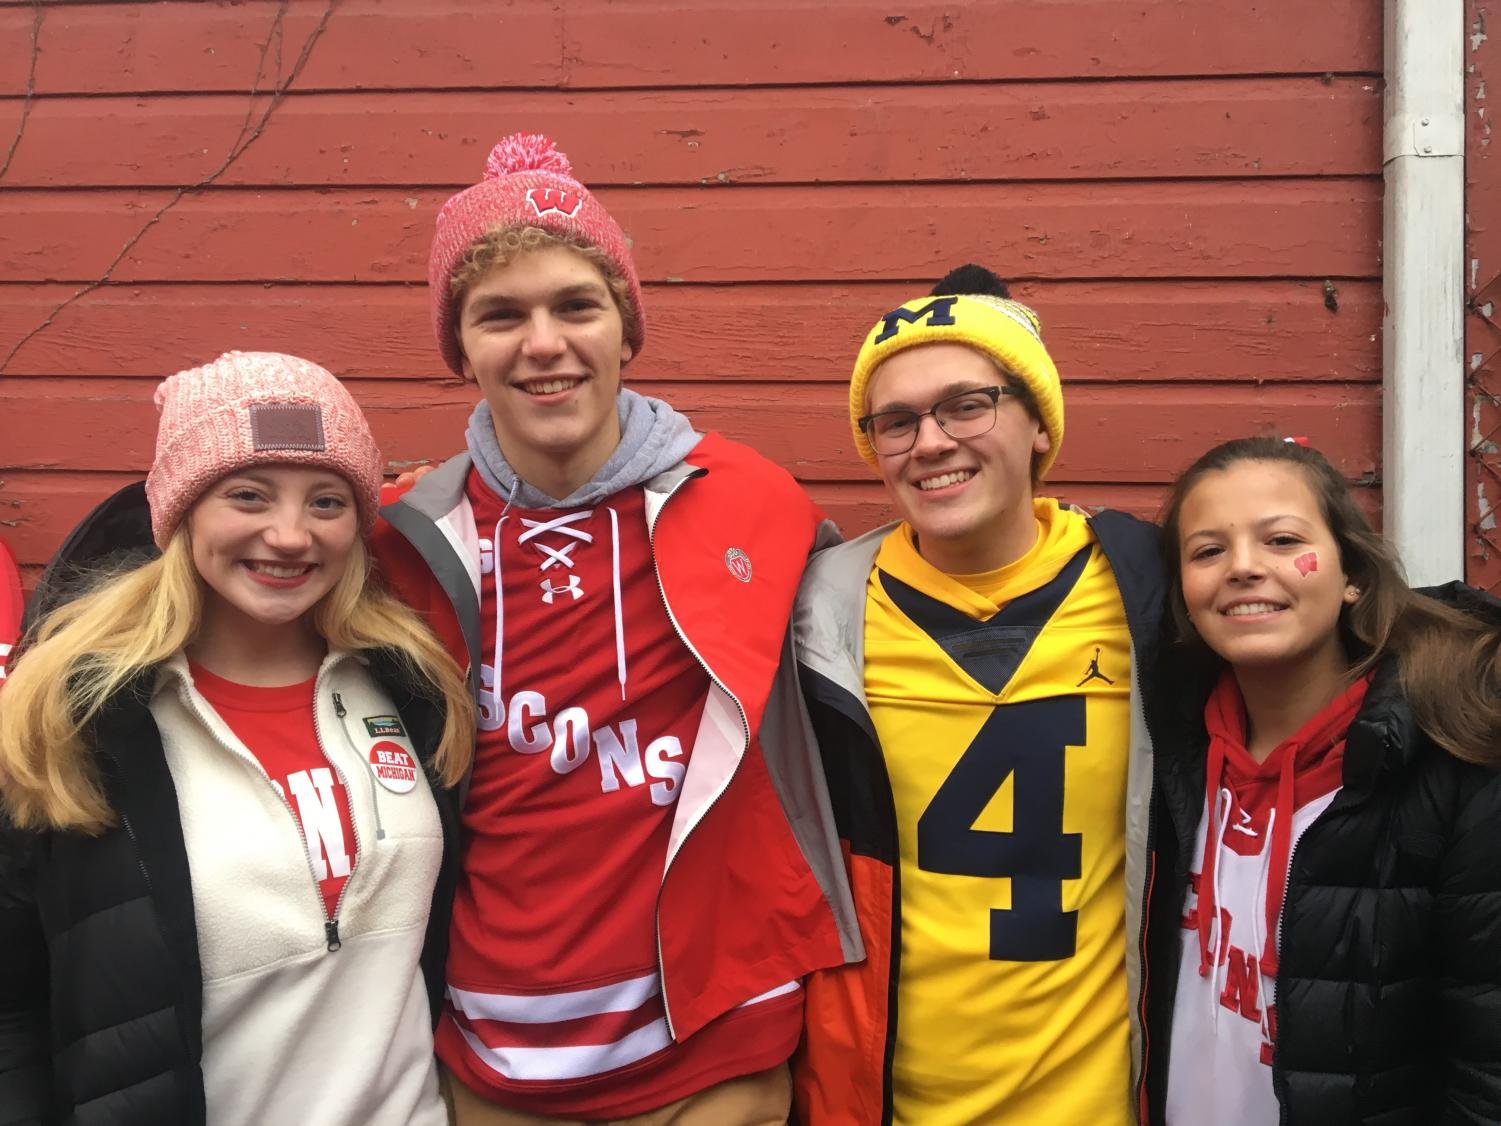 Joey Self (second from right) and his friends at the Michigan-Wisconsin football game last year.